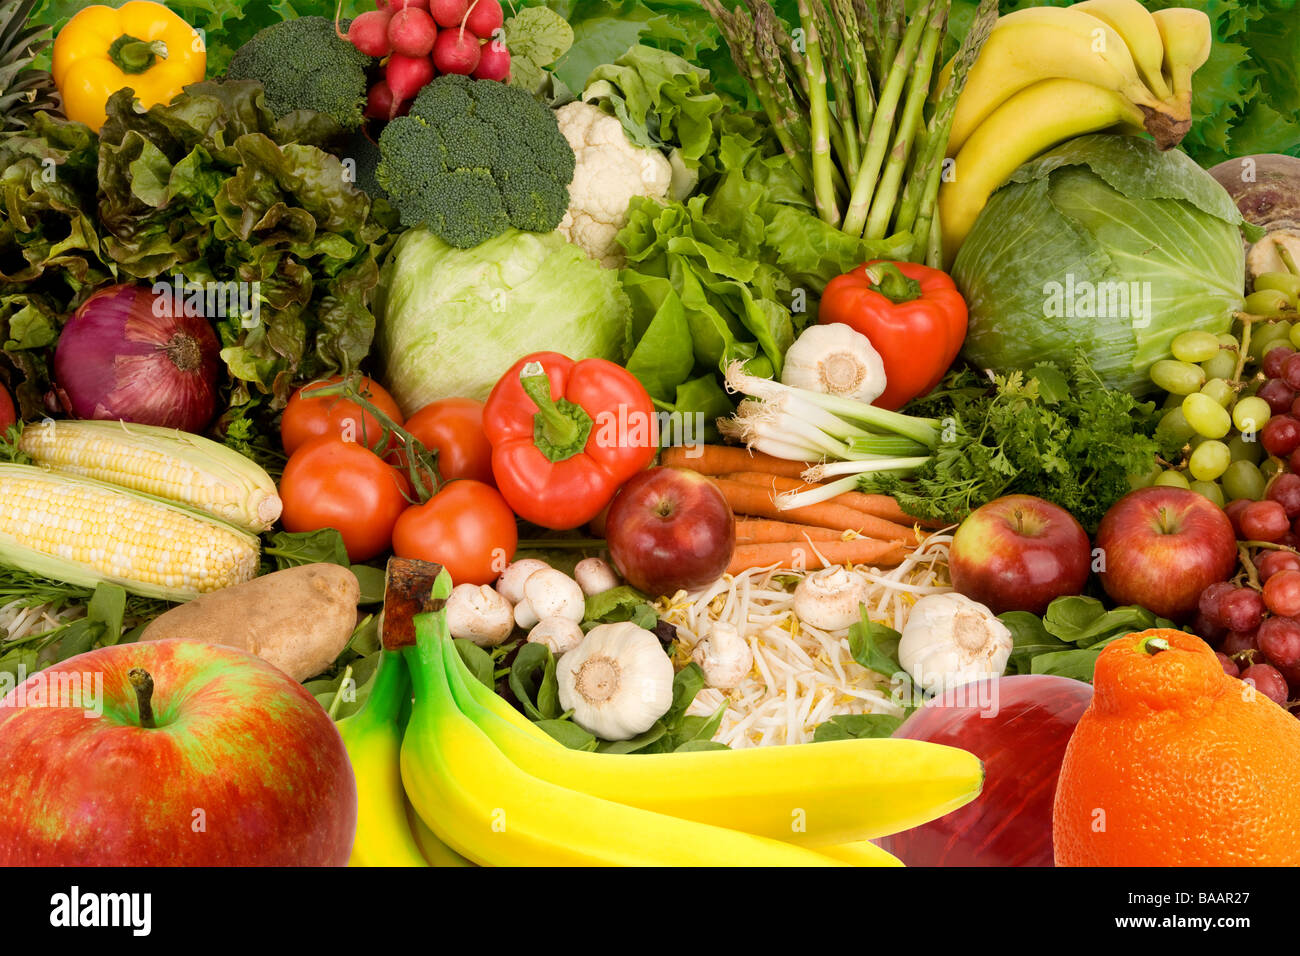 This is a display of various fruits and vegetables Stock Photo